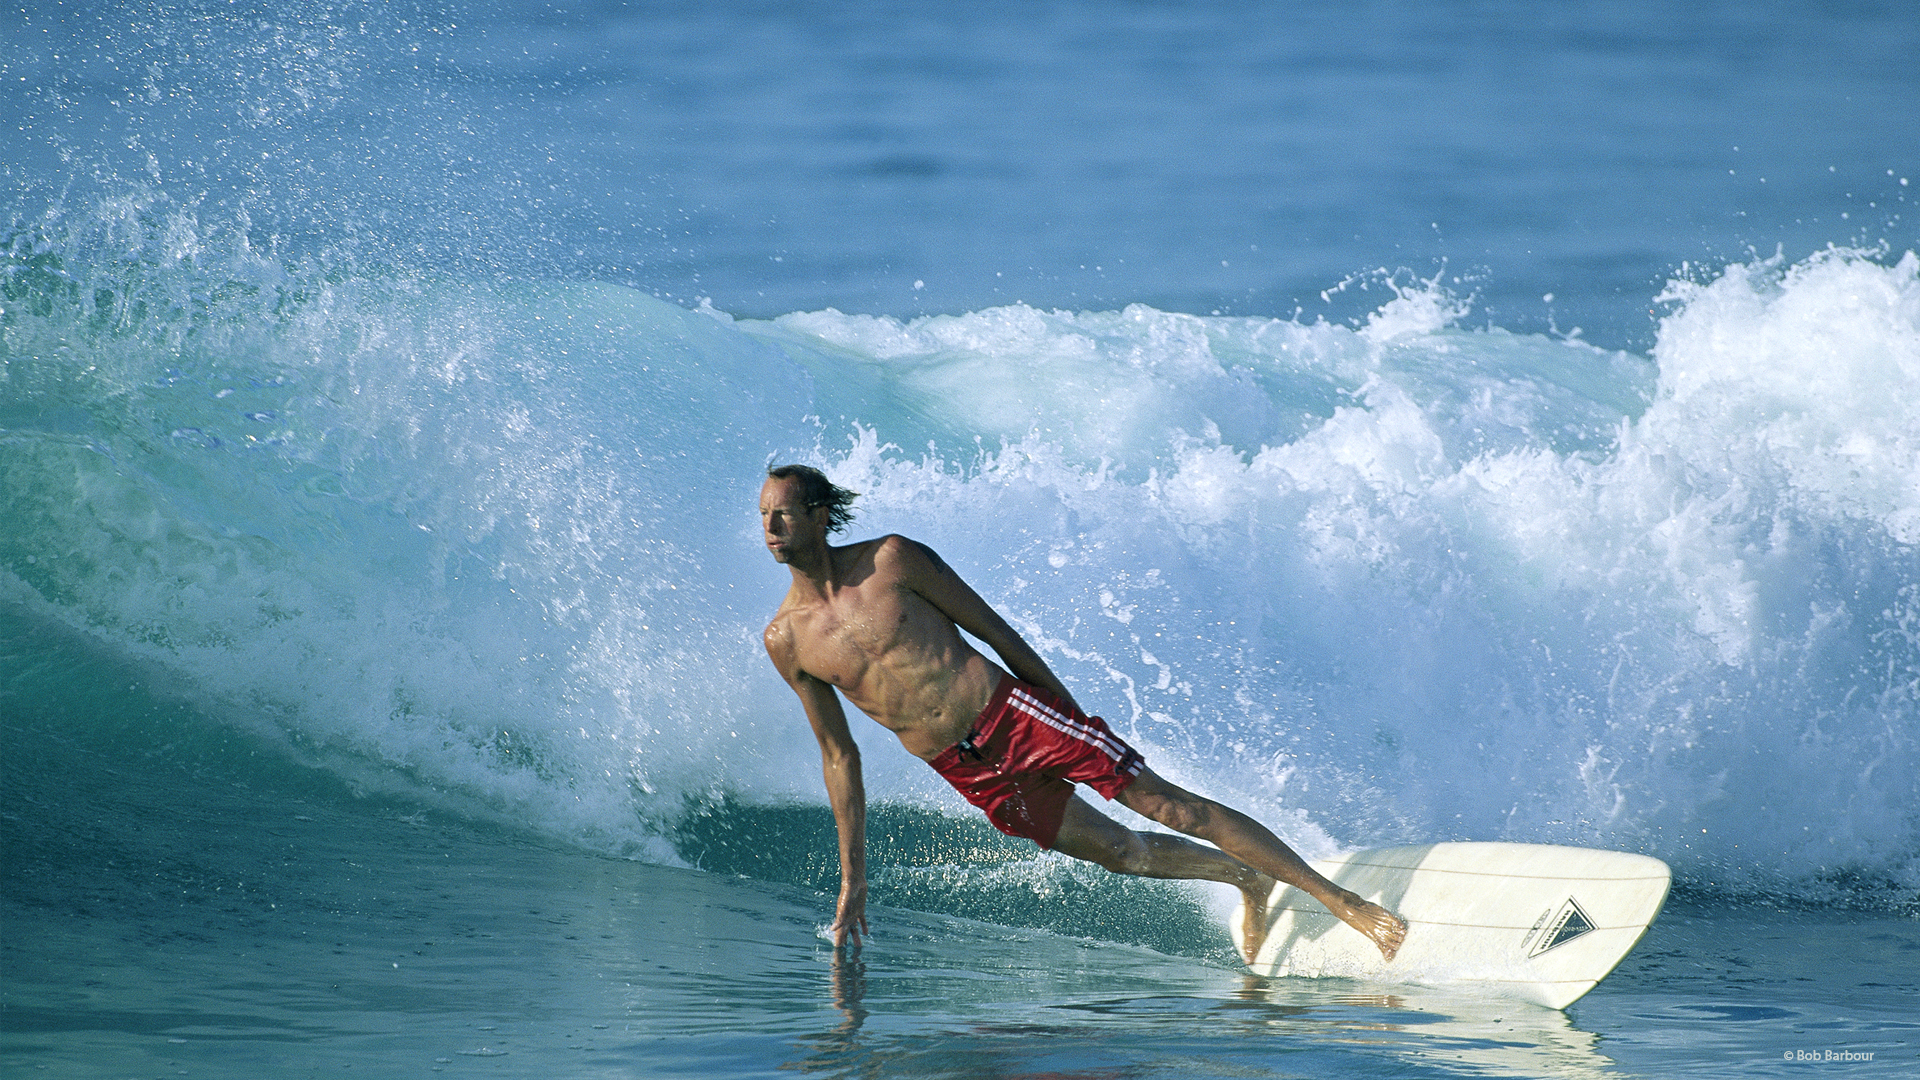 Terry Simms - Legendary Surfer